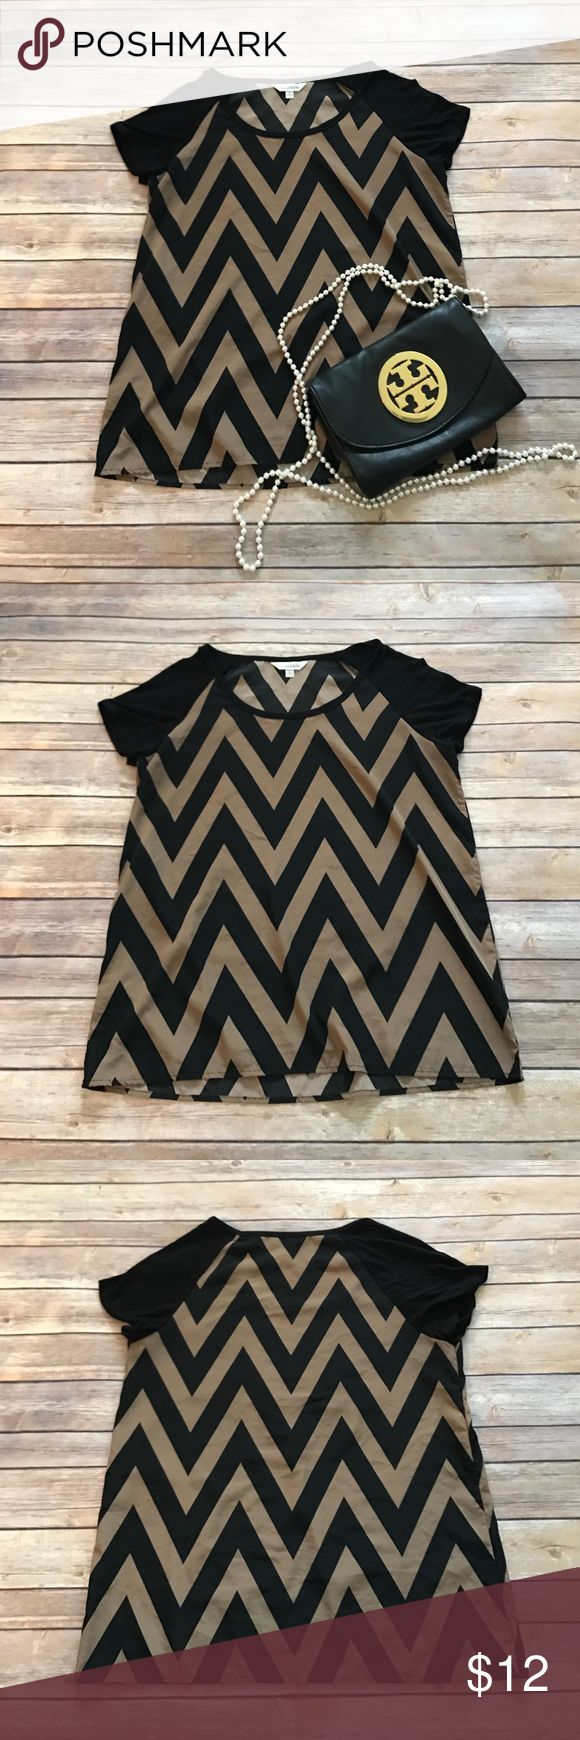 "Charming Charlie chevron top Cute Charming Charlie chevron top in EUC. No holes or stains, measures 26"" in length. Make an offer or bundle and save! Charming Charlie Tops Tees - Short Sleeve"